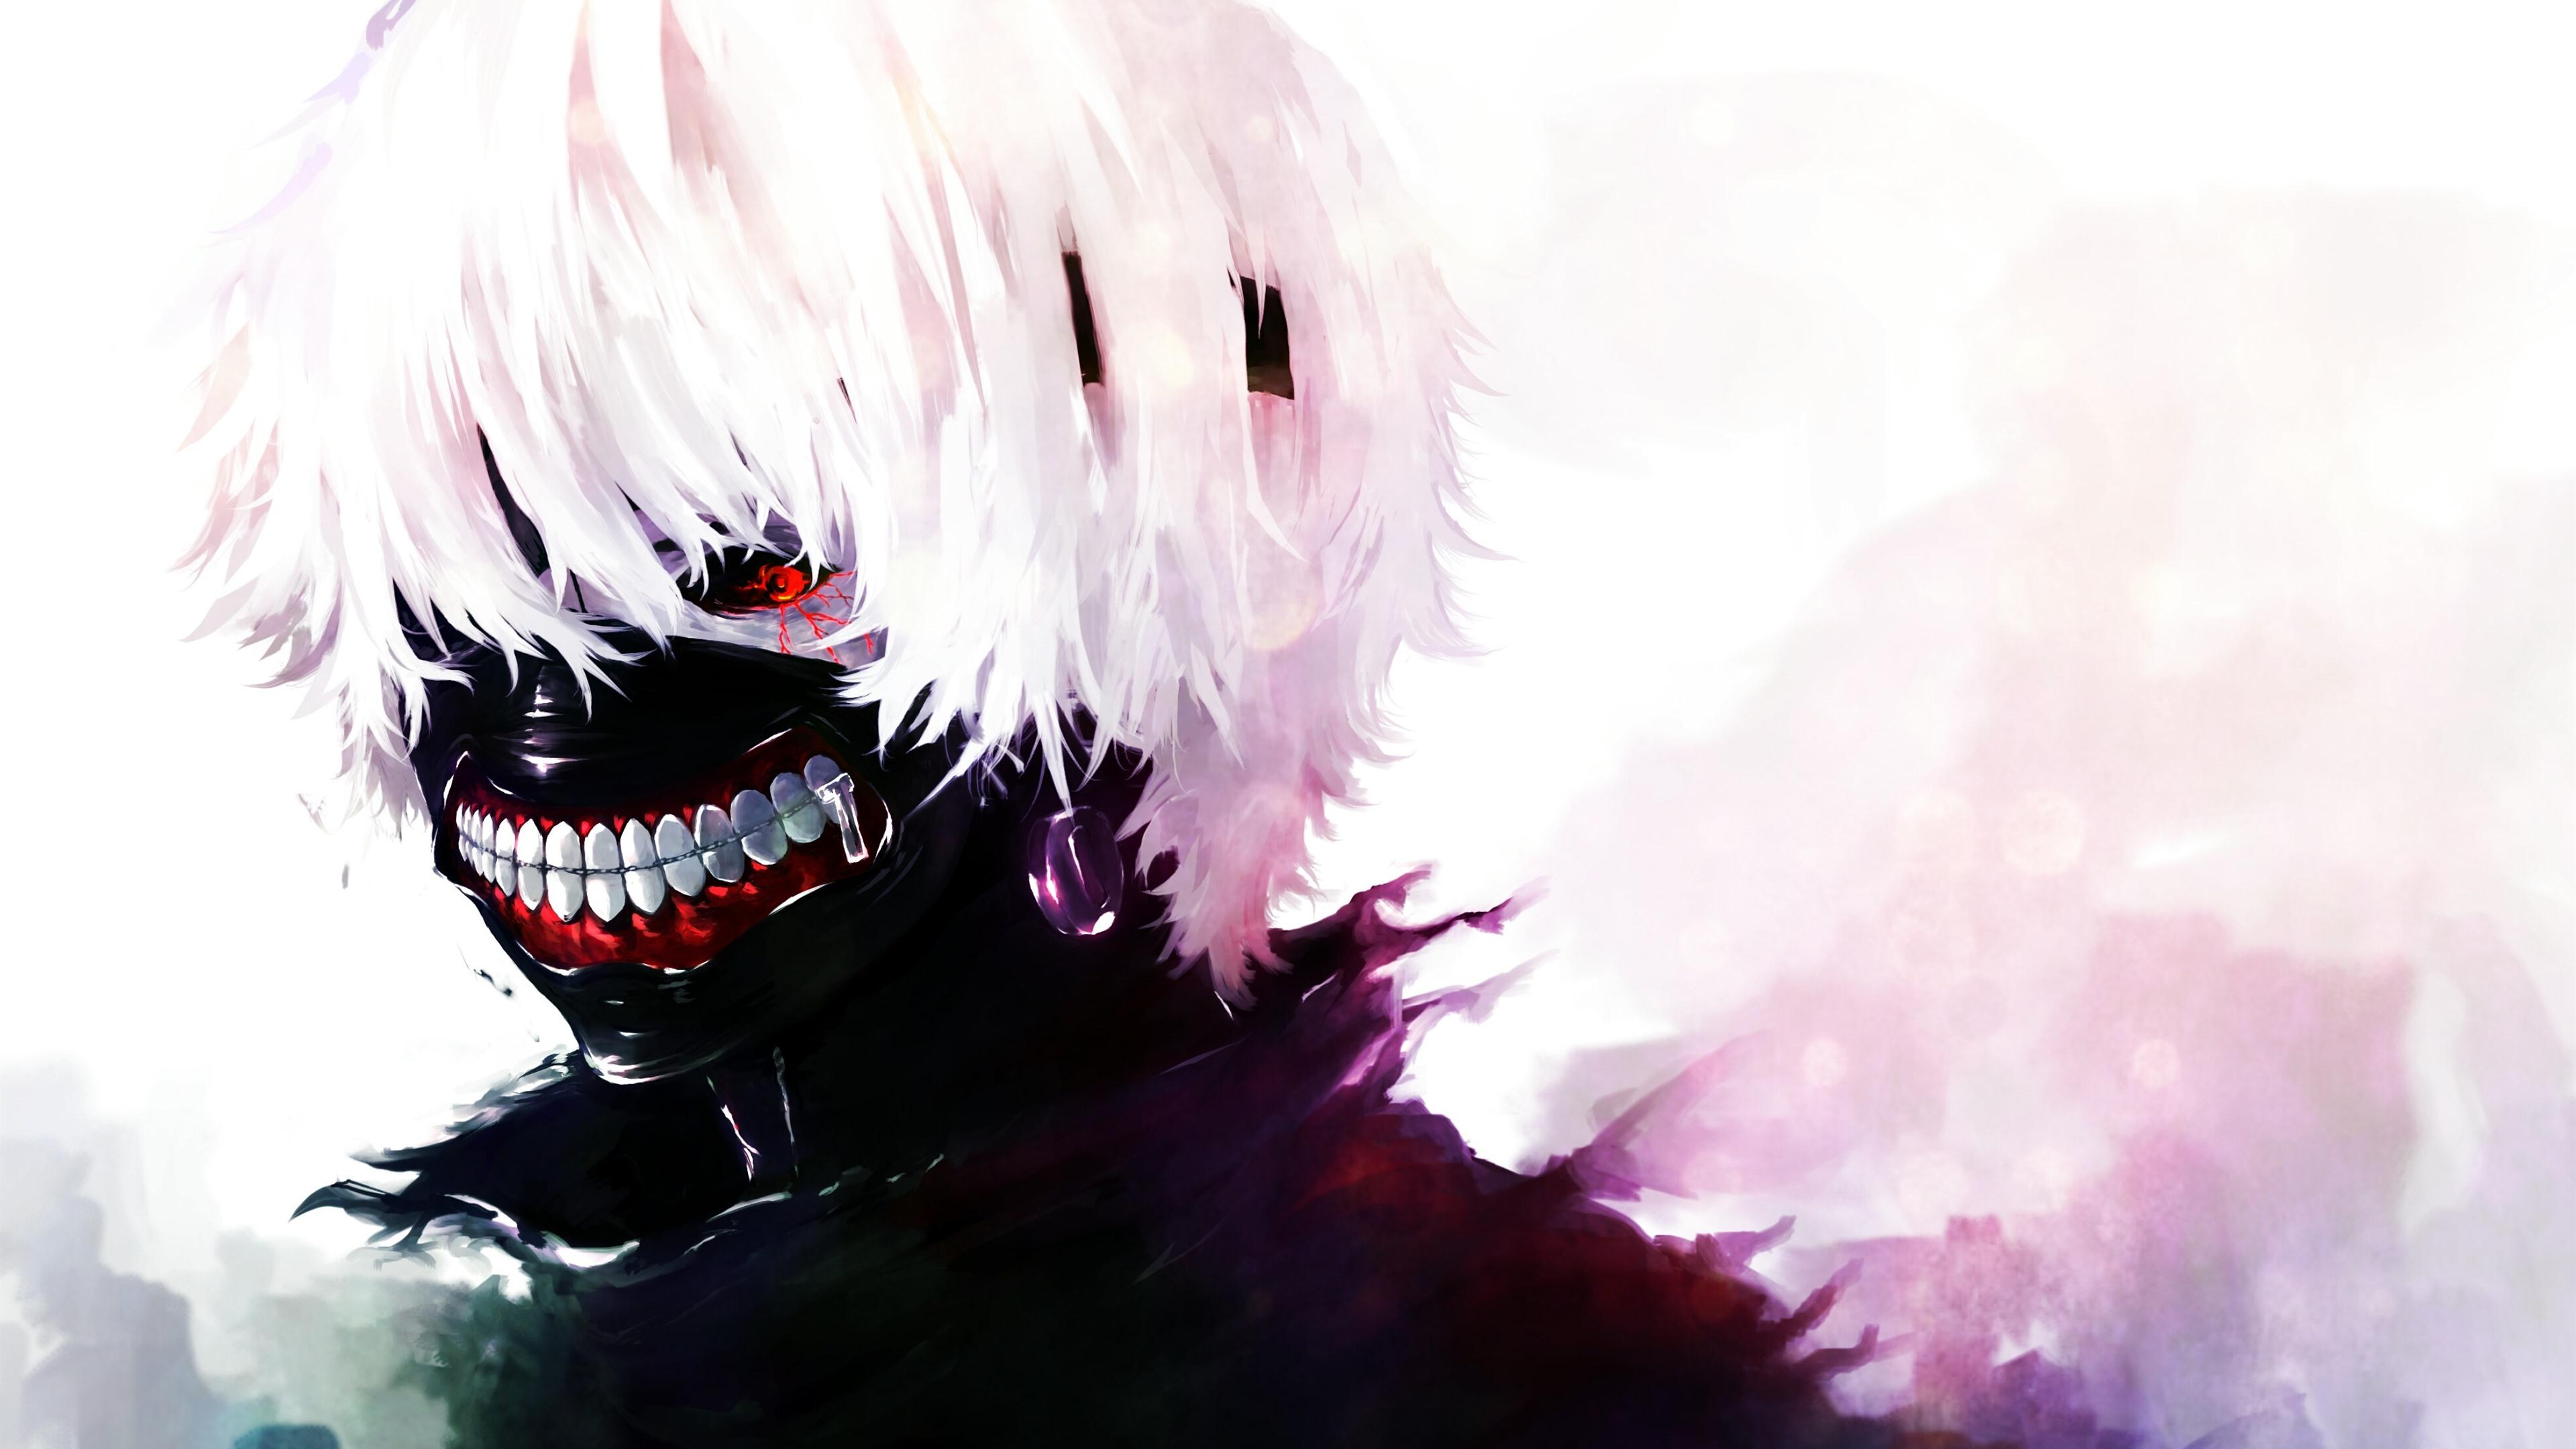 Tokyo Ghoul Anime Wallpapers - Wallpaper Cave